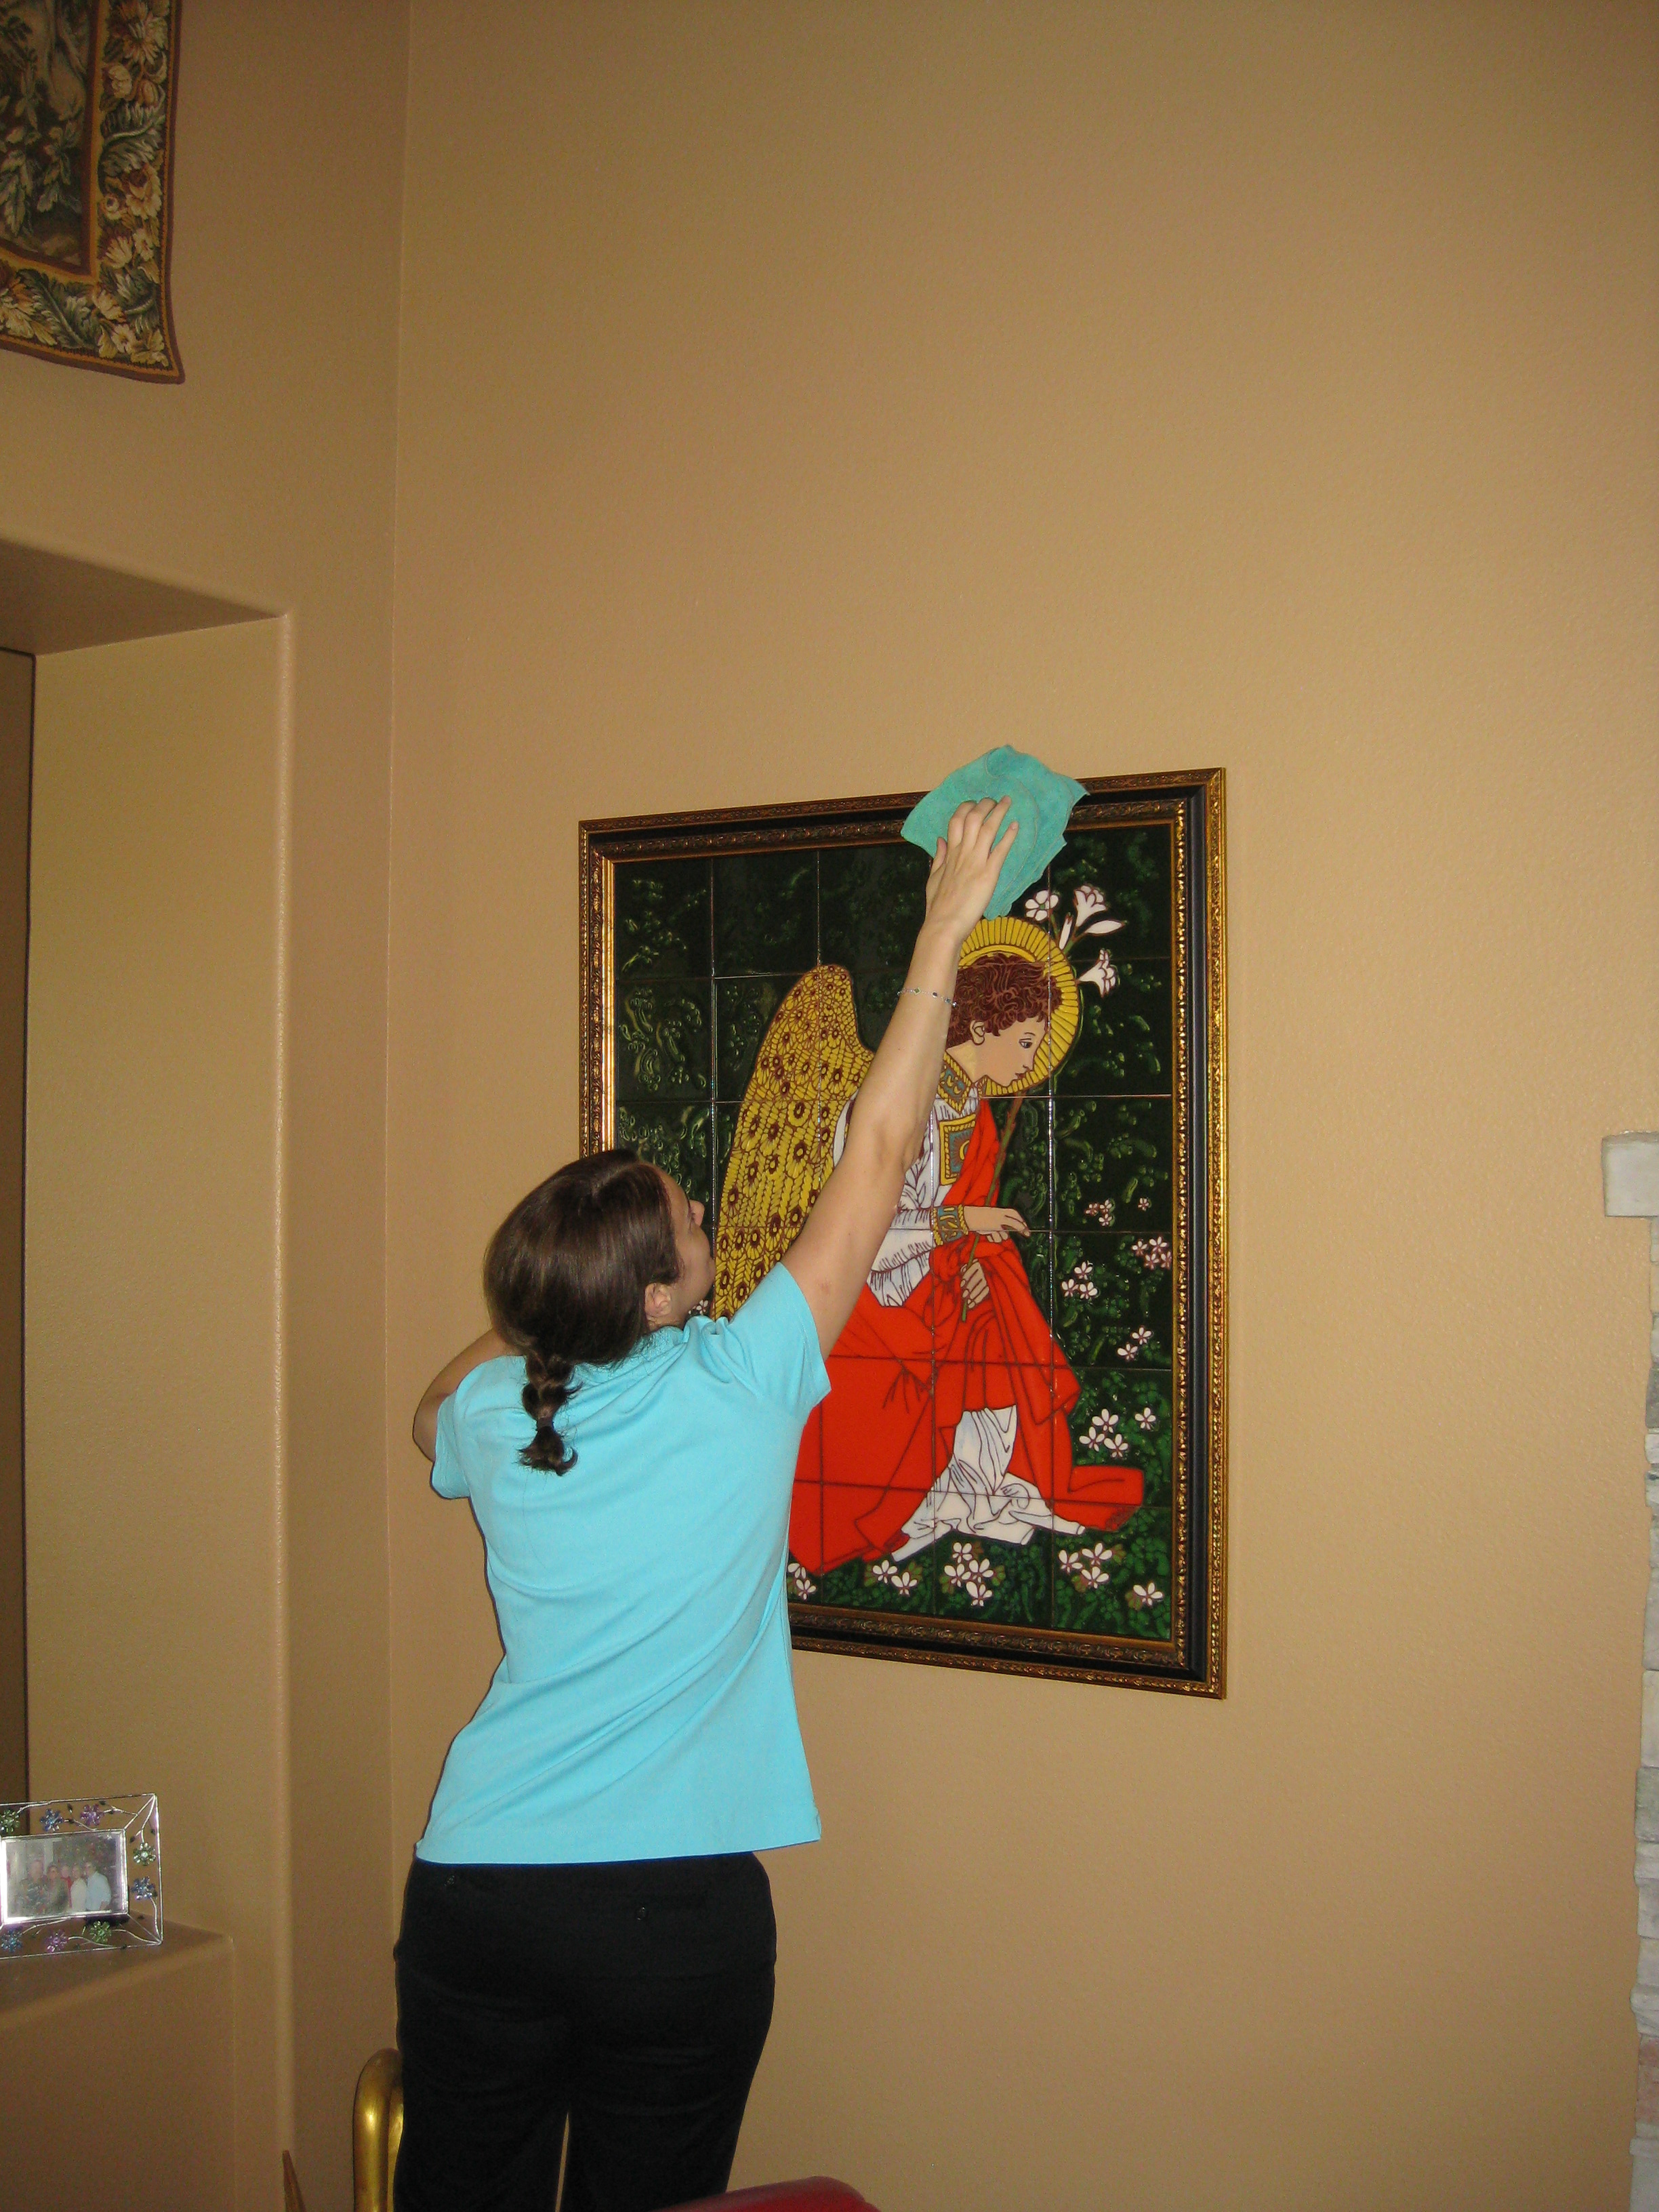 My Maids House Cleaning Service image 7